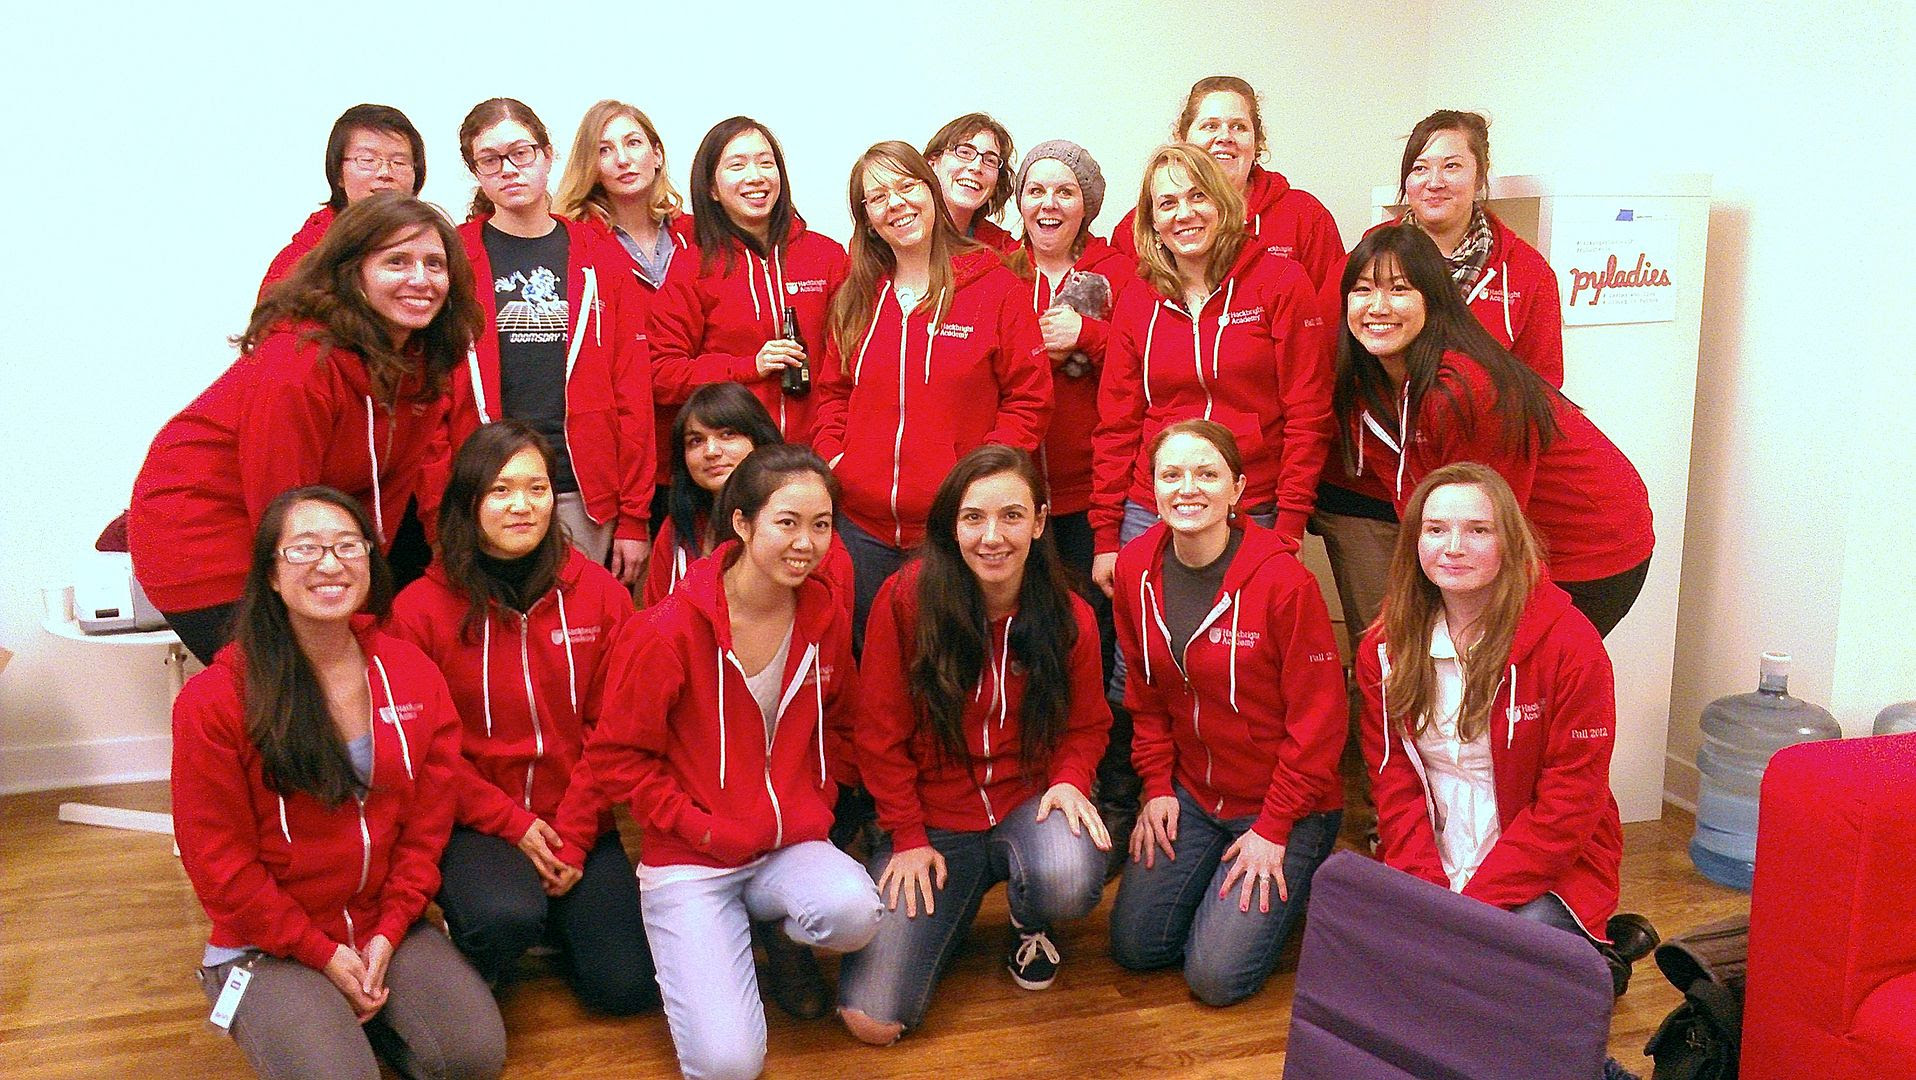 First Hackbright Alumnight photo IMAG1431_zps9f1de1dd.jpg